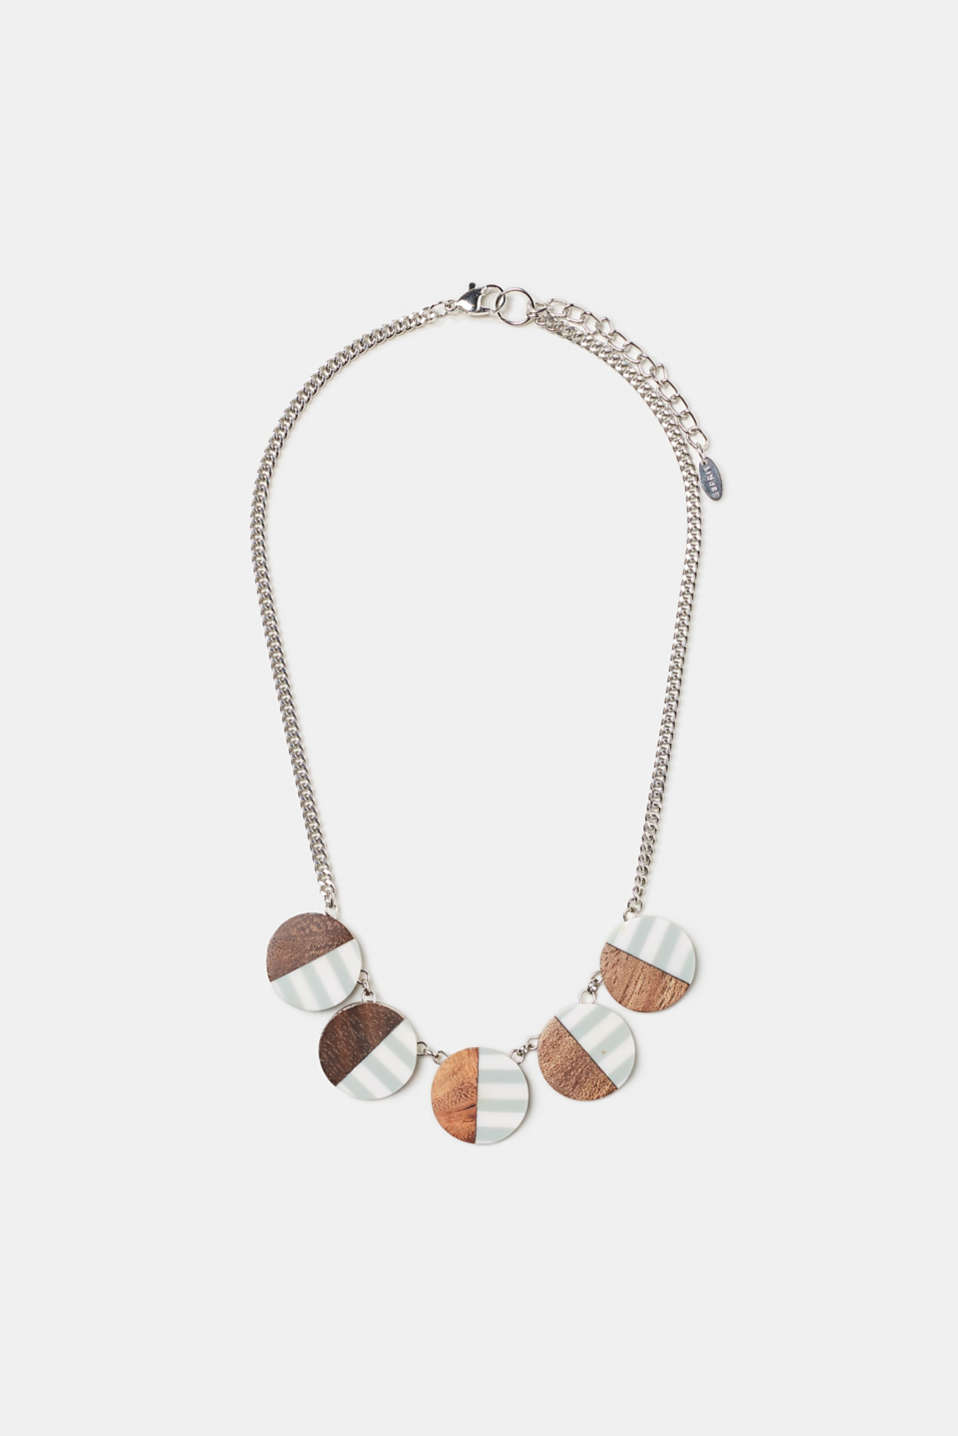 The round pendants with different patterns including wood texture and stripes make this necklace an eye-catcher.